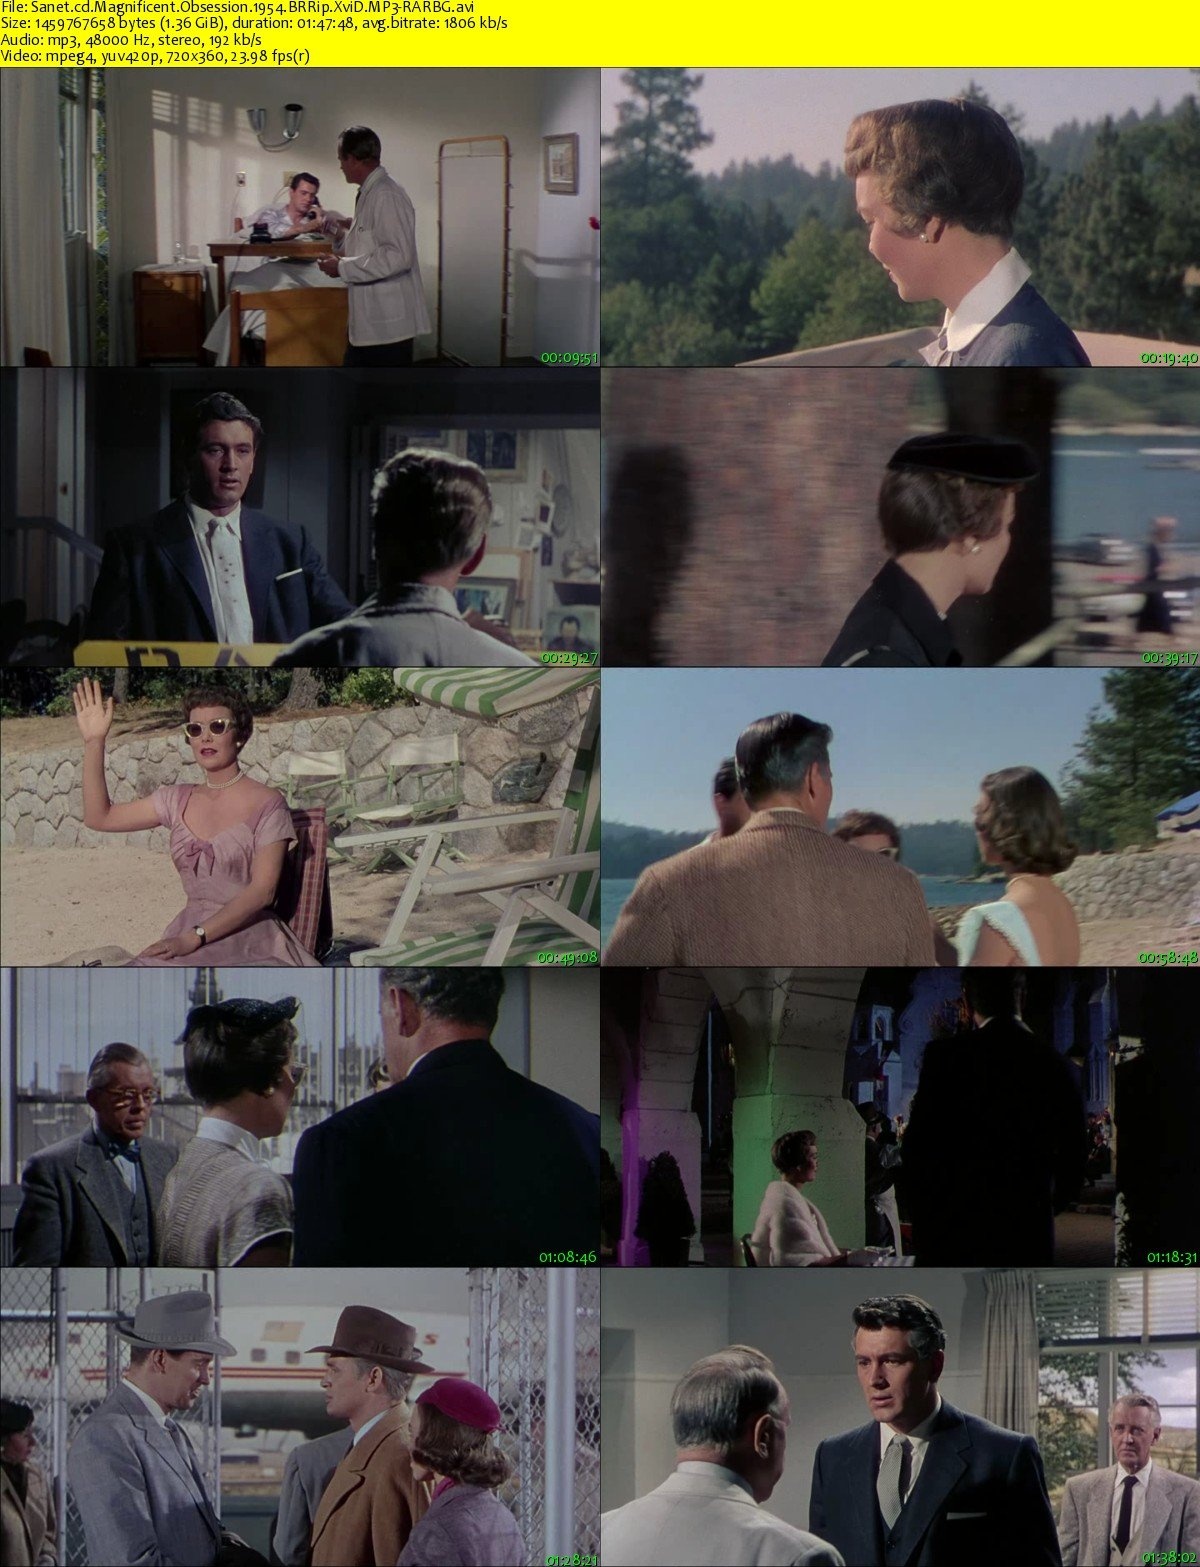 Download Magnificent Obsession 1954 BRRip XviD MP3-RARBG